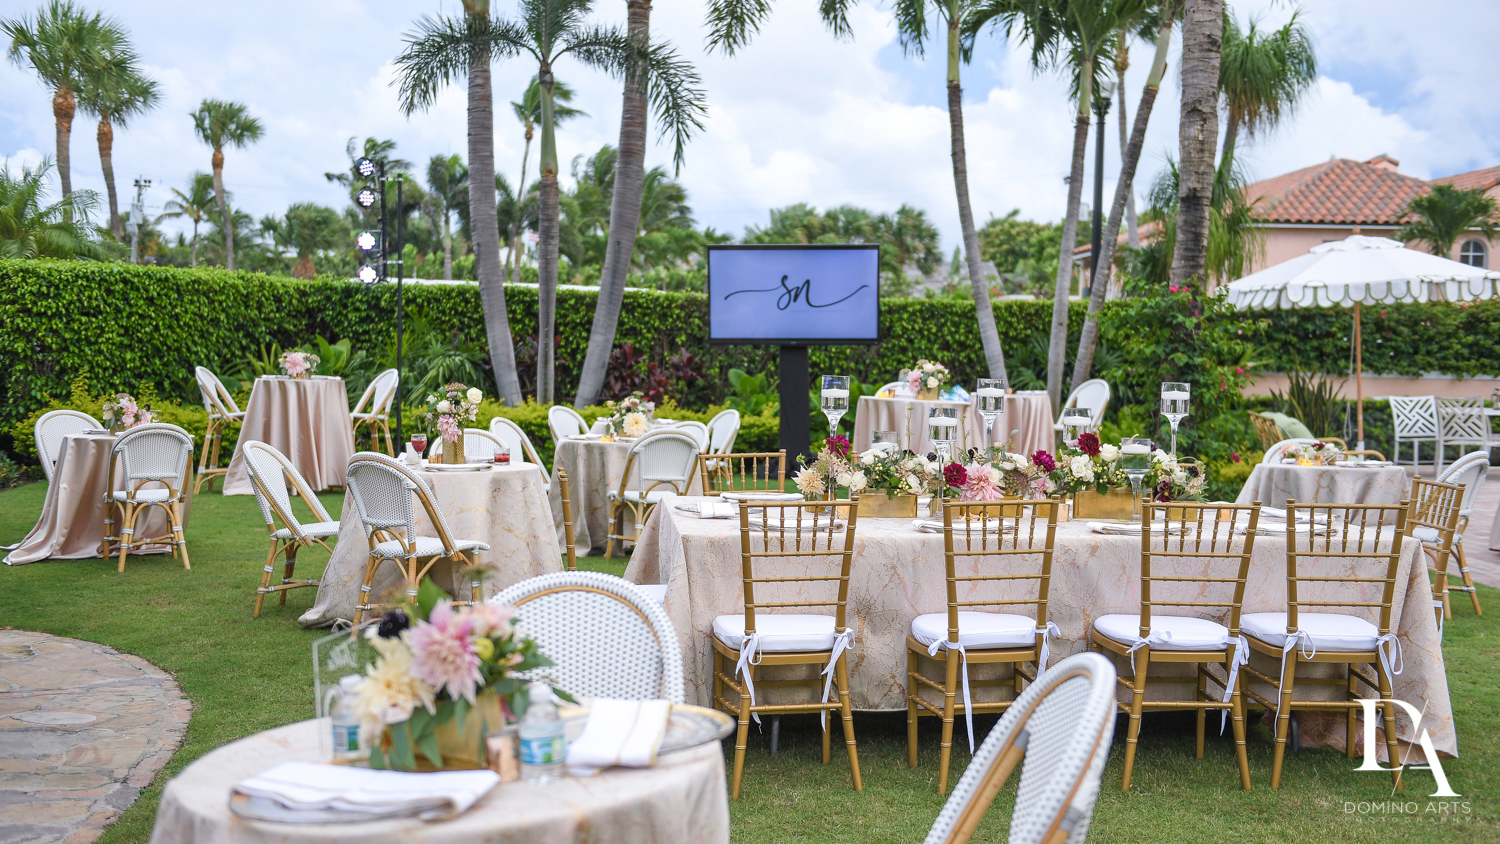 best decor at Luxury Summer Wedding at The Colony Hotel Palm Beach by Domino Arts Photography